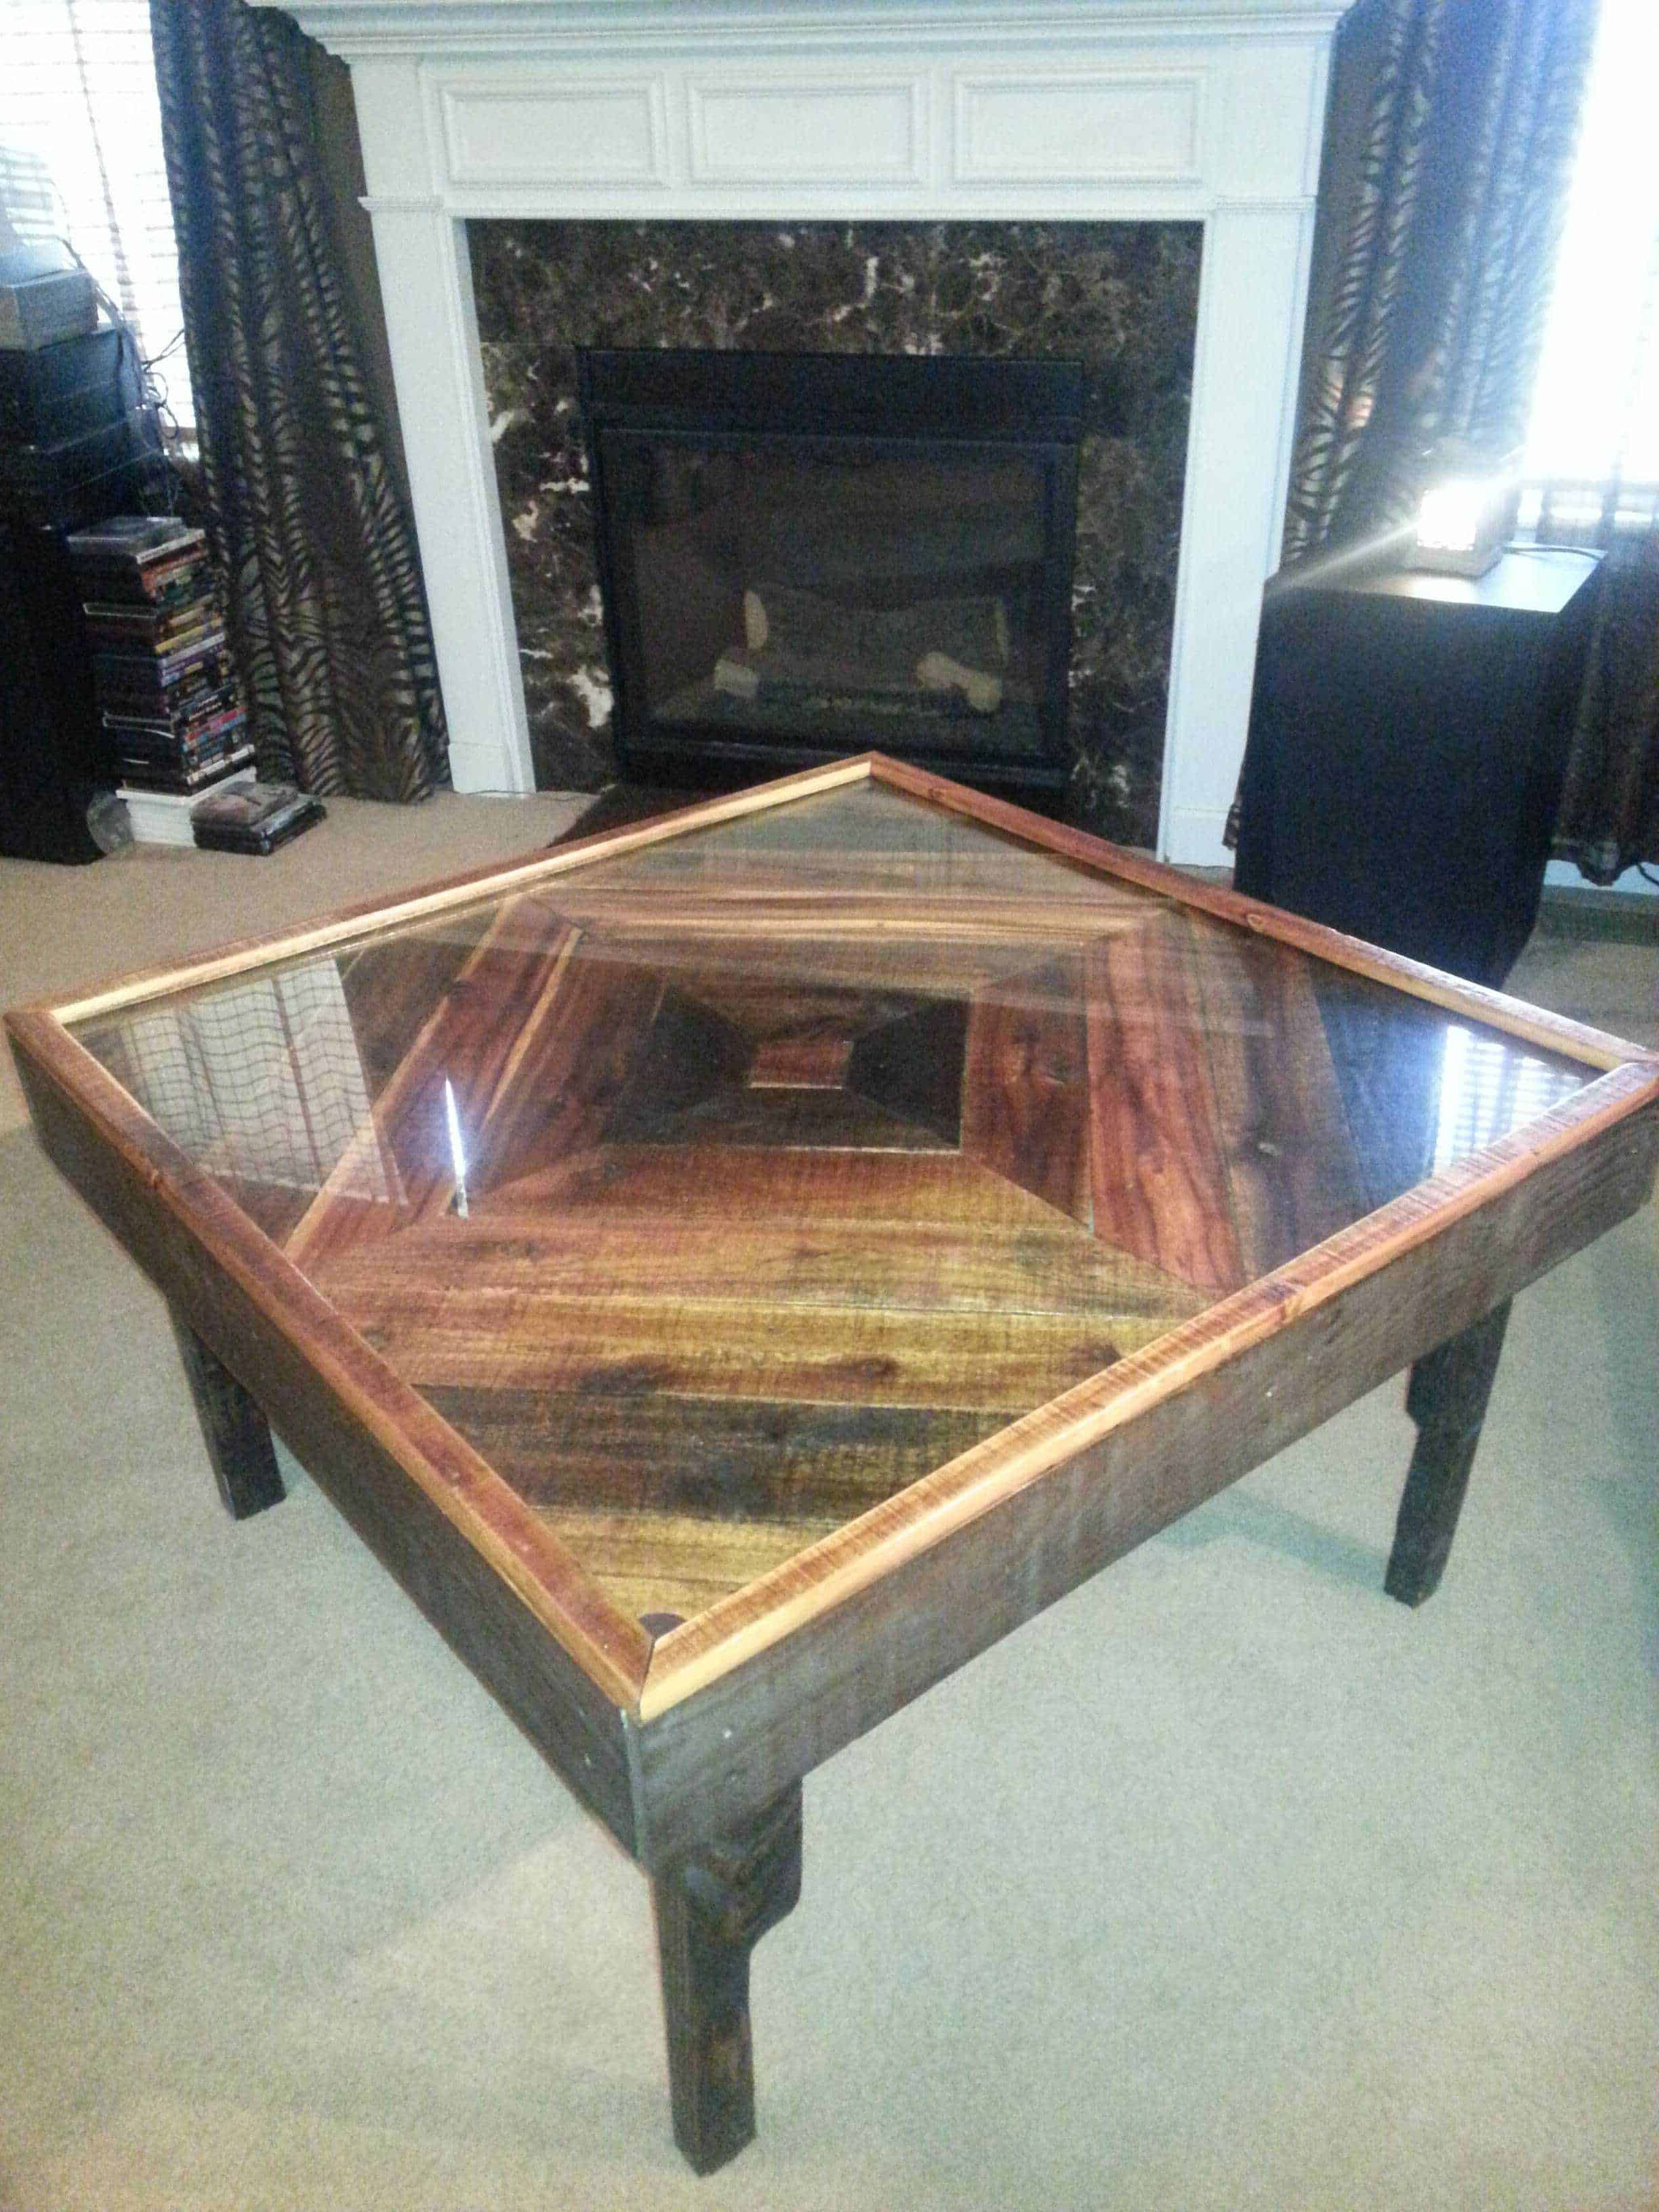 Black Walnut Pallet Into Coffee Table 1001 Pallets Coffee Table Wood Coffee Table Small Garden Coffee Table [ 3264 x 2448 Pixel ]